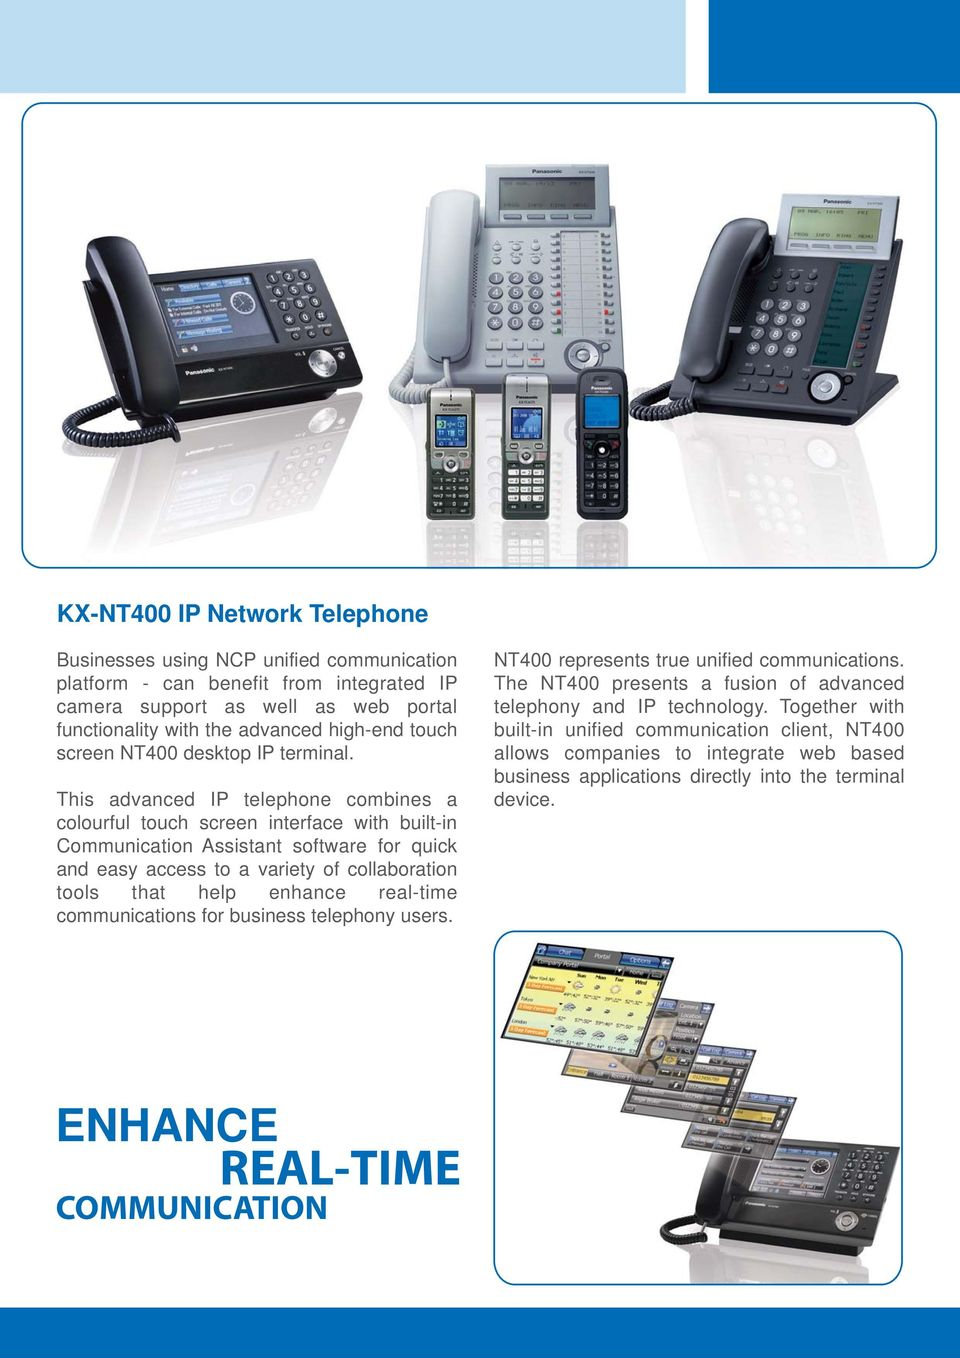 This advanced IP telephone combines a colourful touch screen interface with built-in Communication Assistant software for quick and easy access to a variety of collaboration tools that help